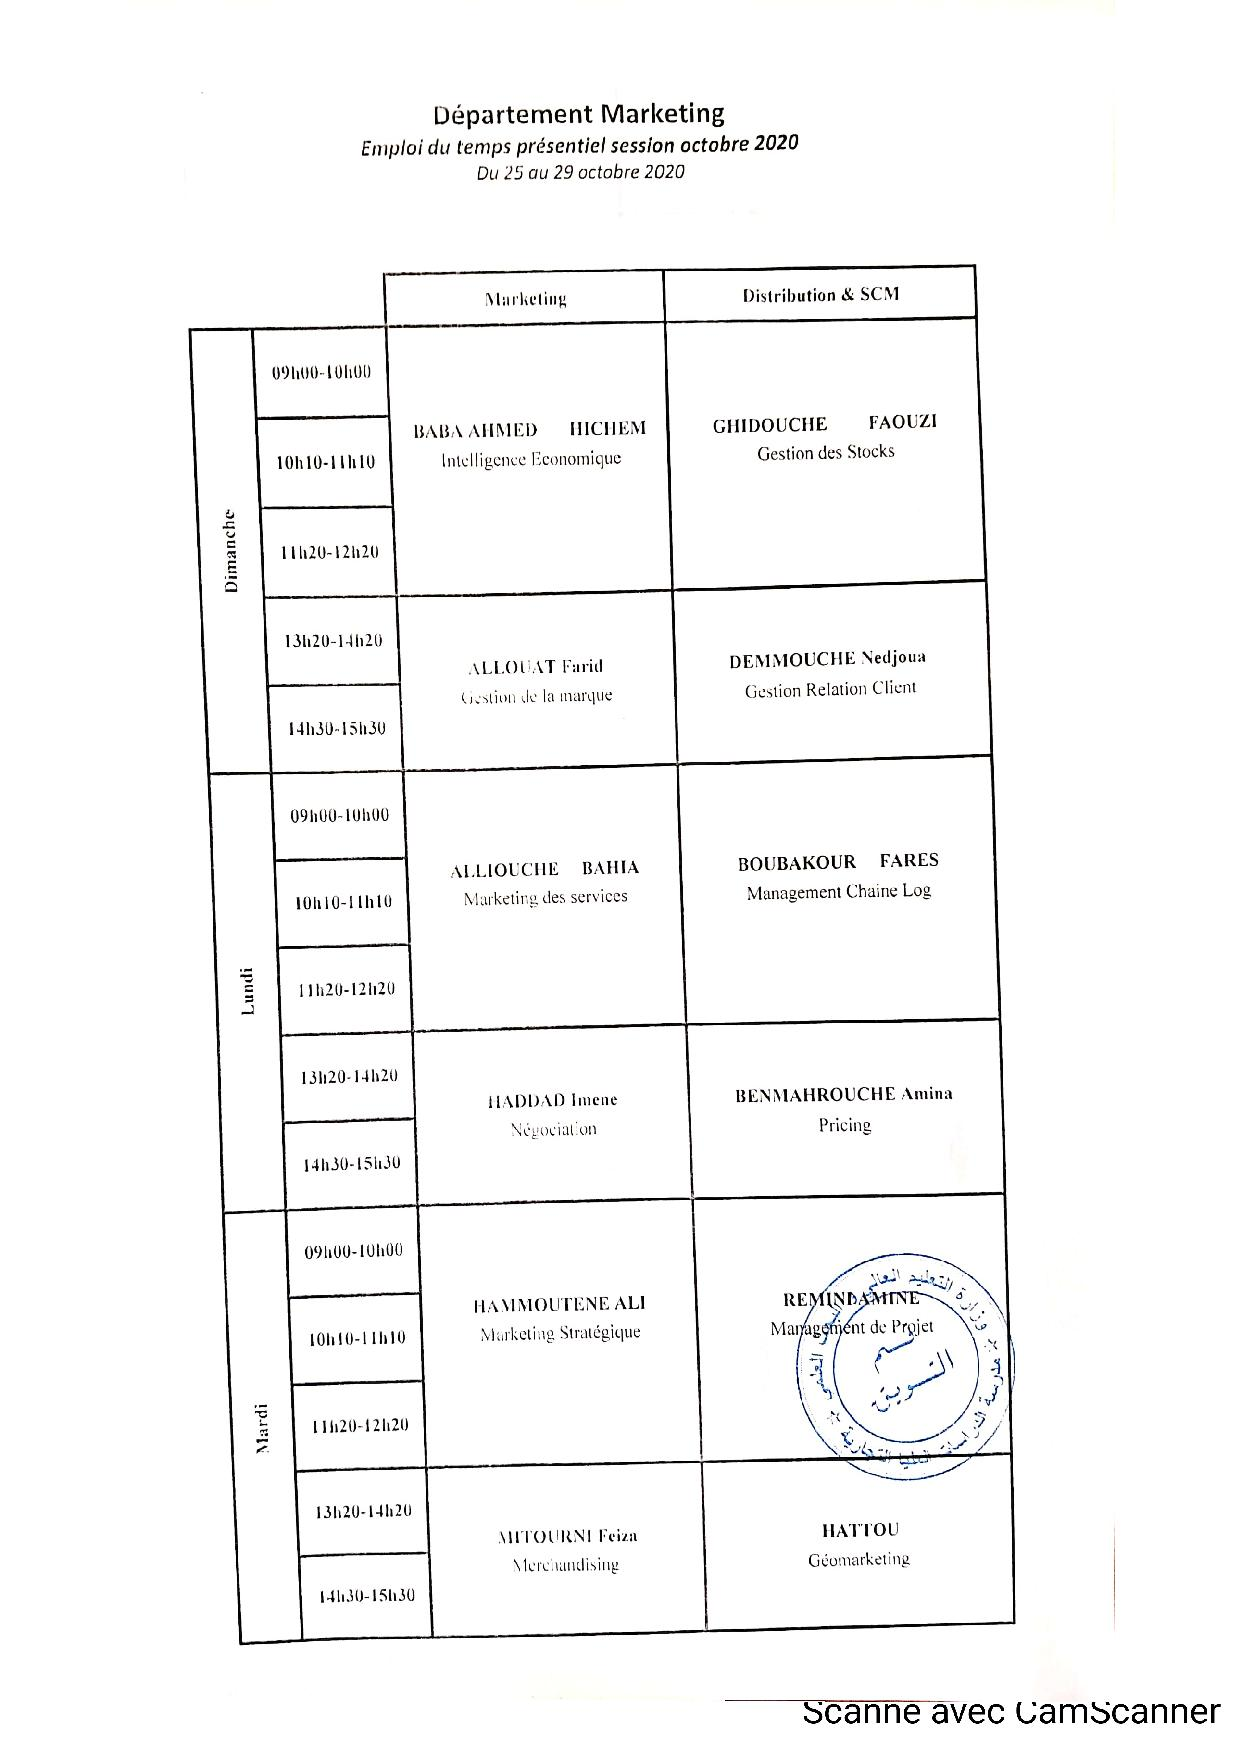 Timetable of Marketing Department